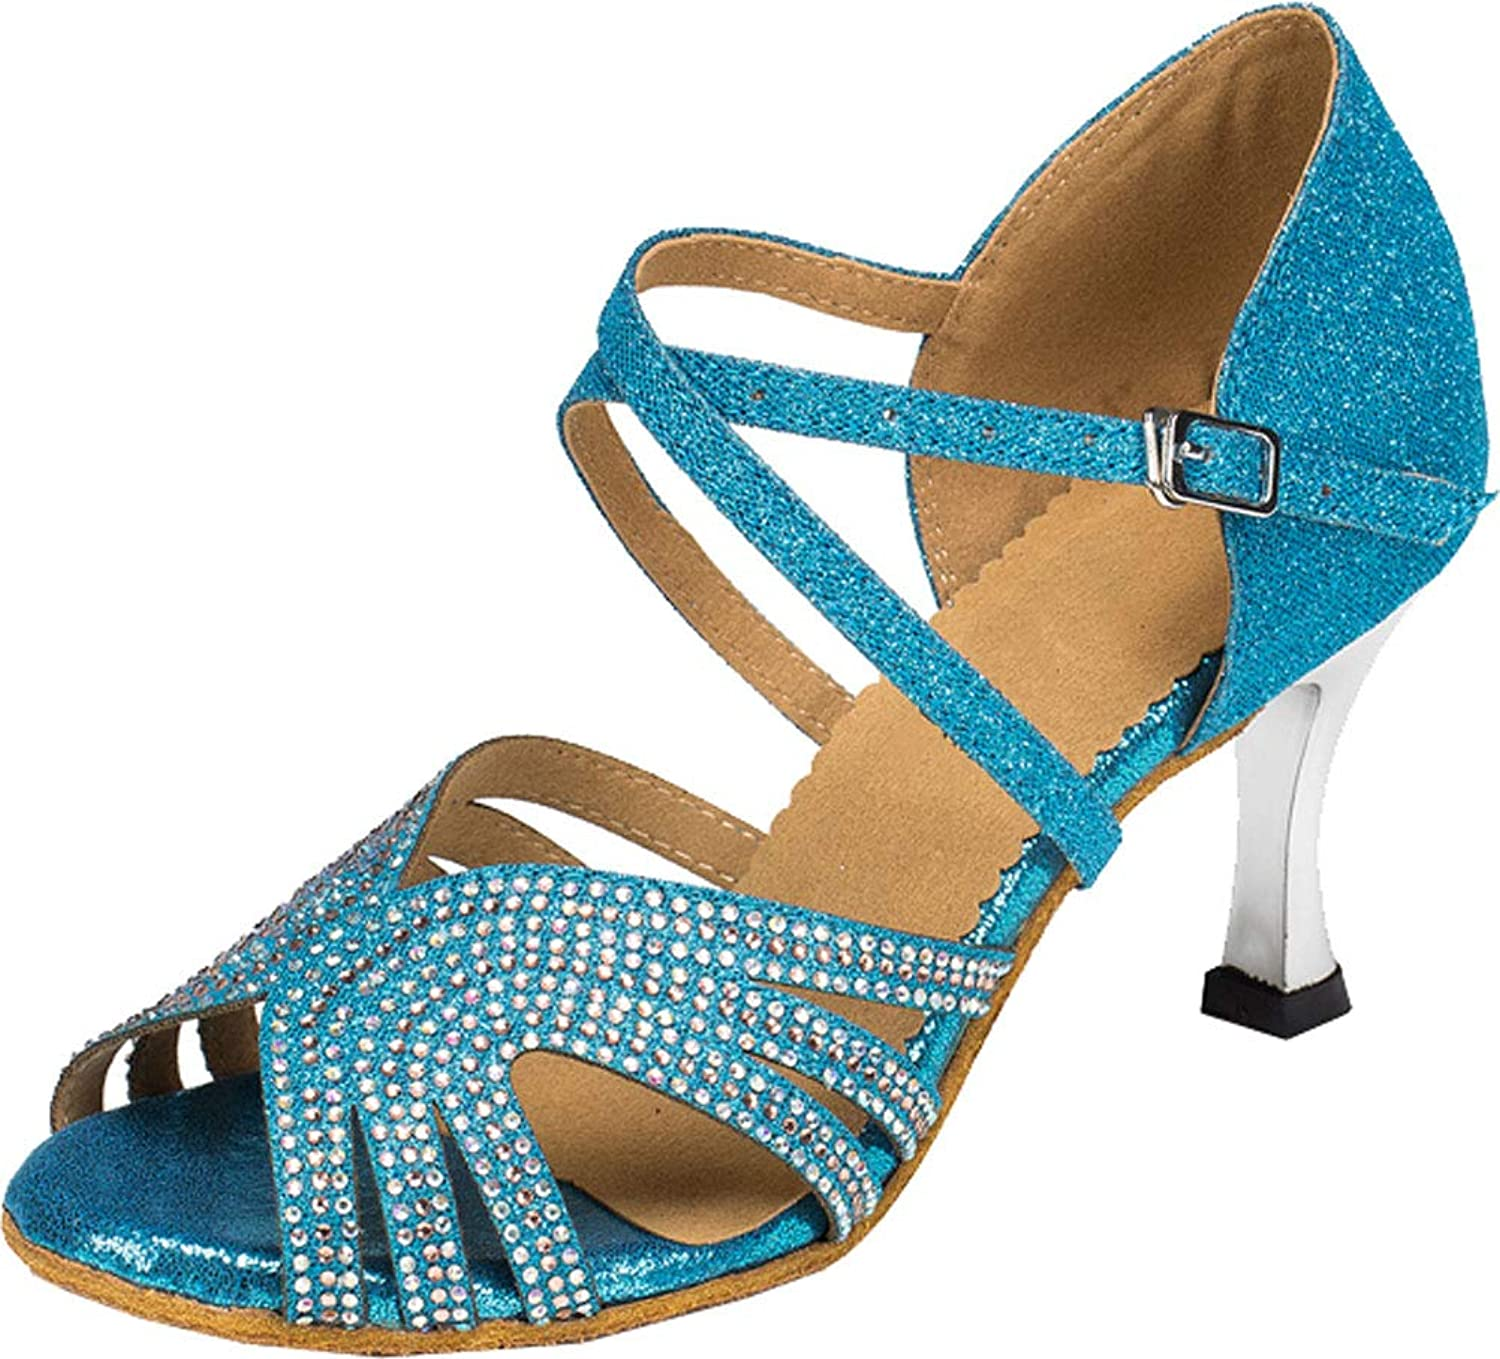 Womens Latin Dance Evening Ballroom shoes Tango Cha-cha Salsa Ankle Straps 0022